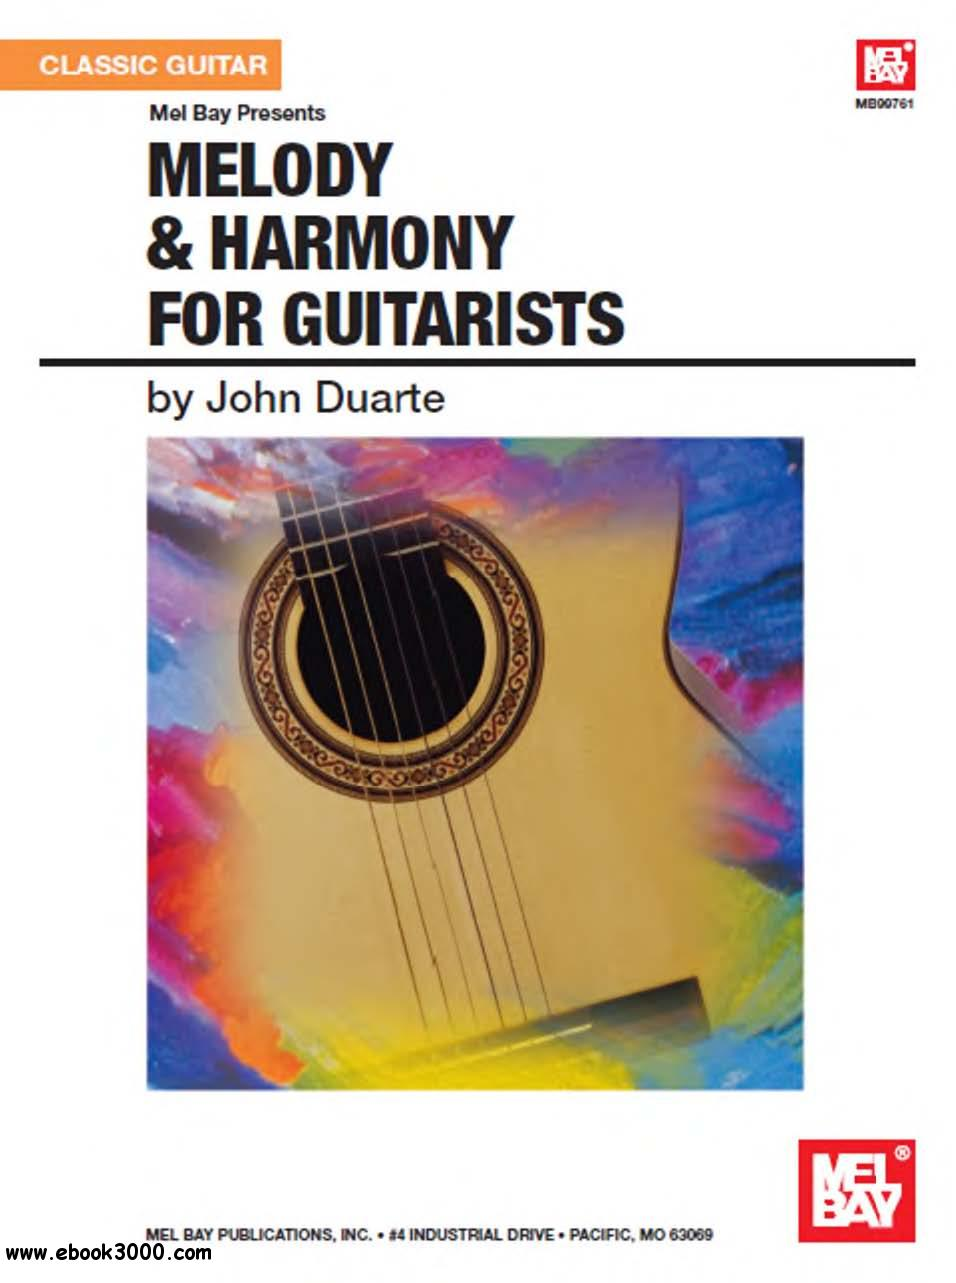 Melody & Harmony for Guitarists by John Duarte free download